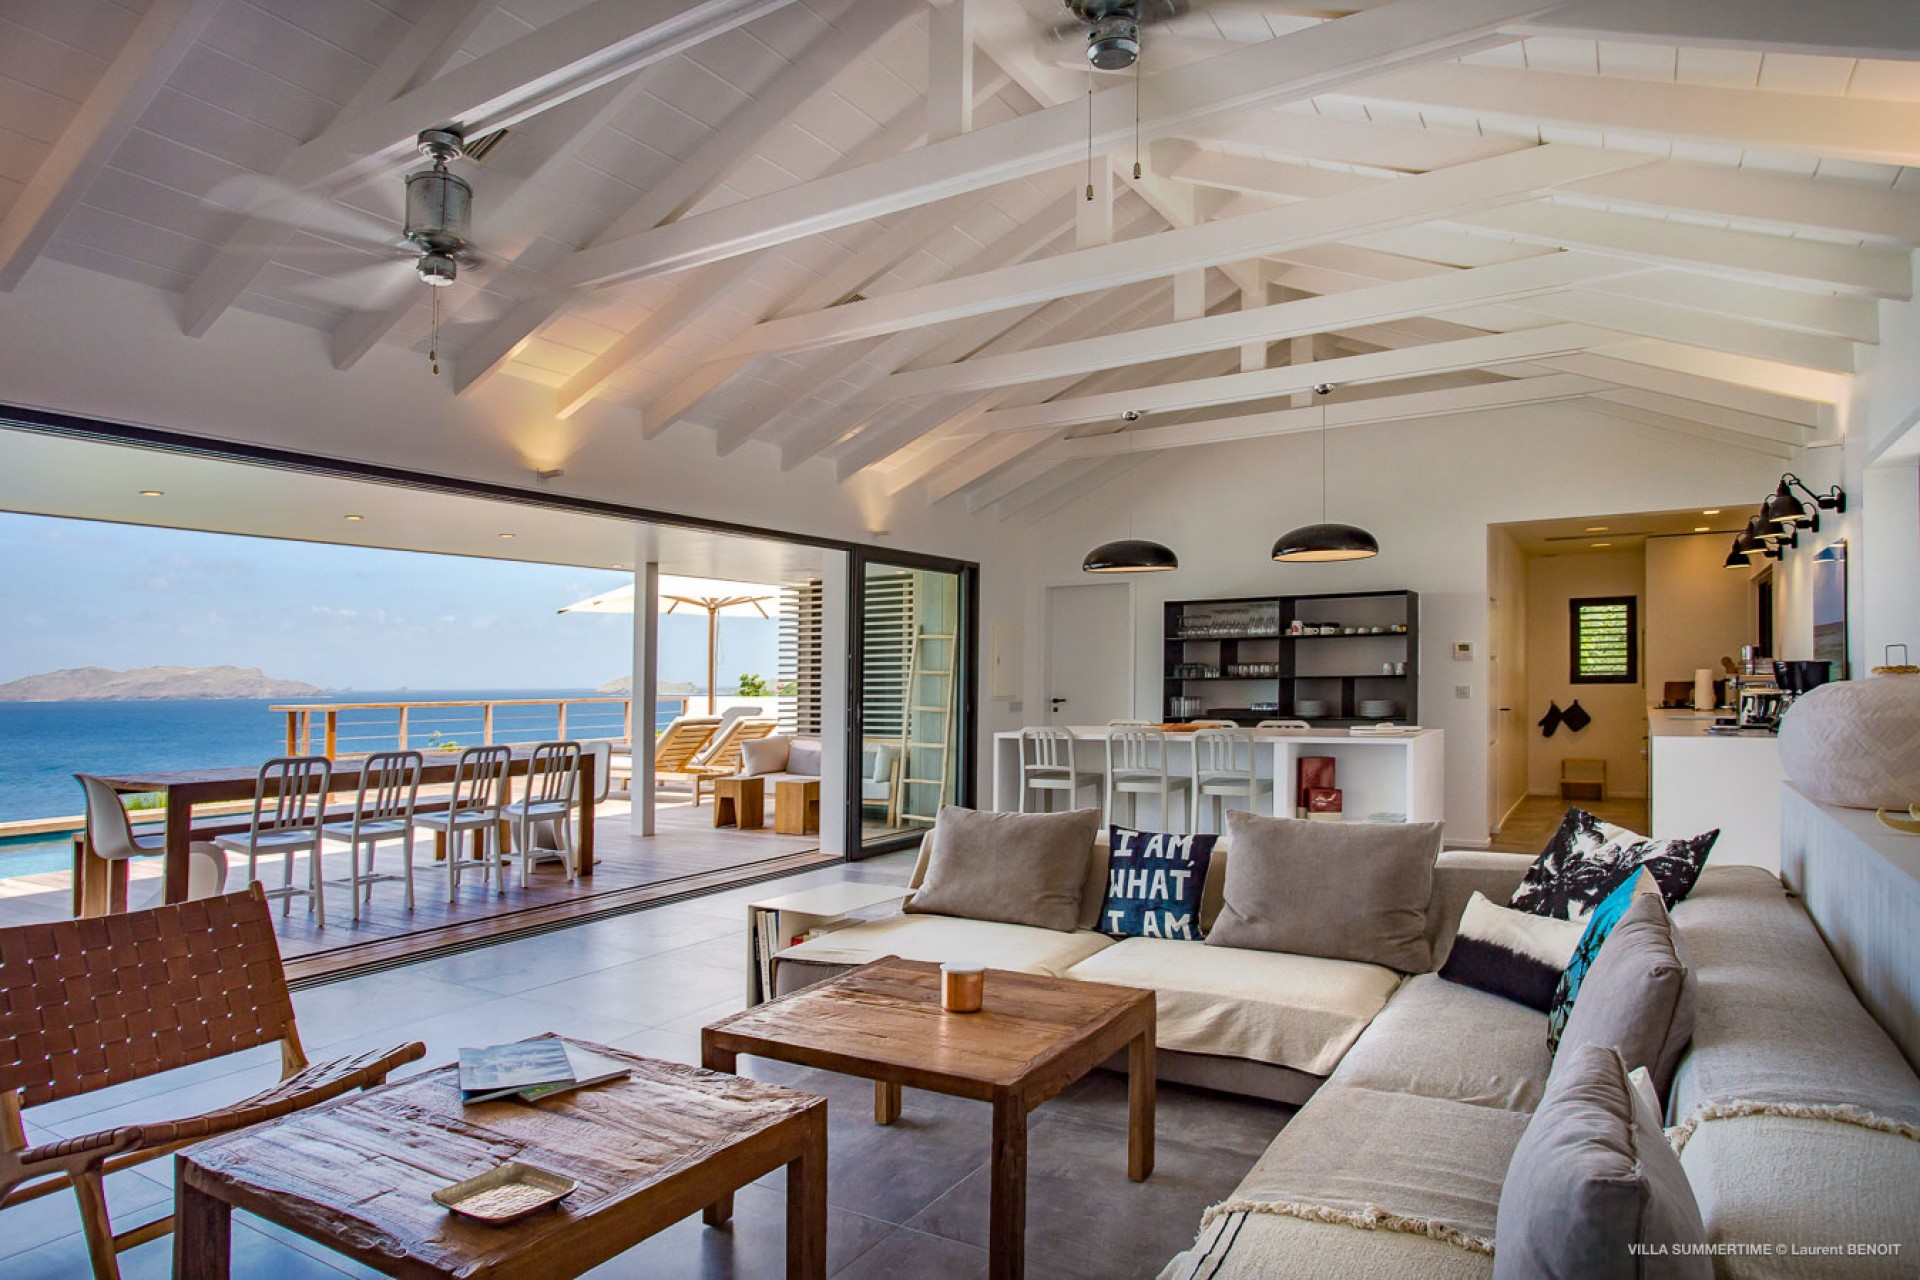 Summertime villa summertime st barts st barths for Apartment villa design